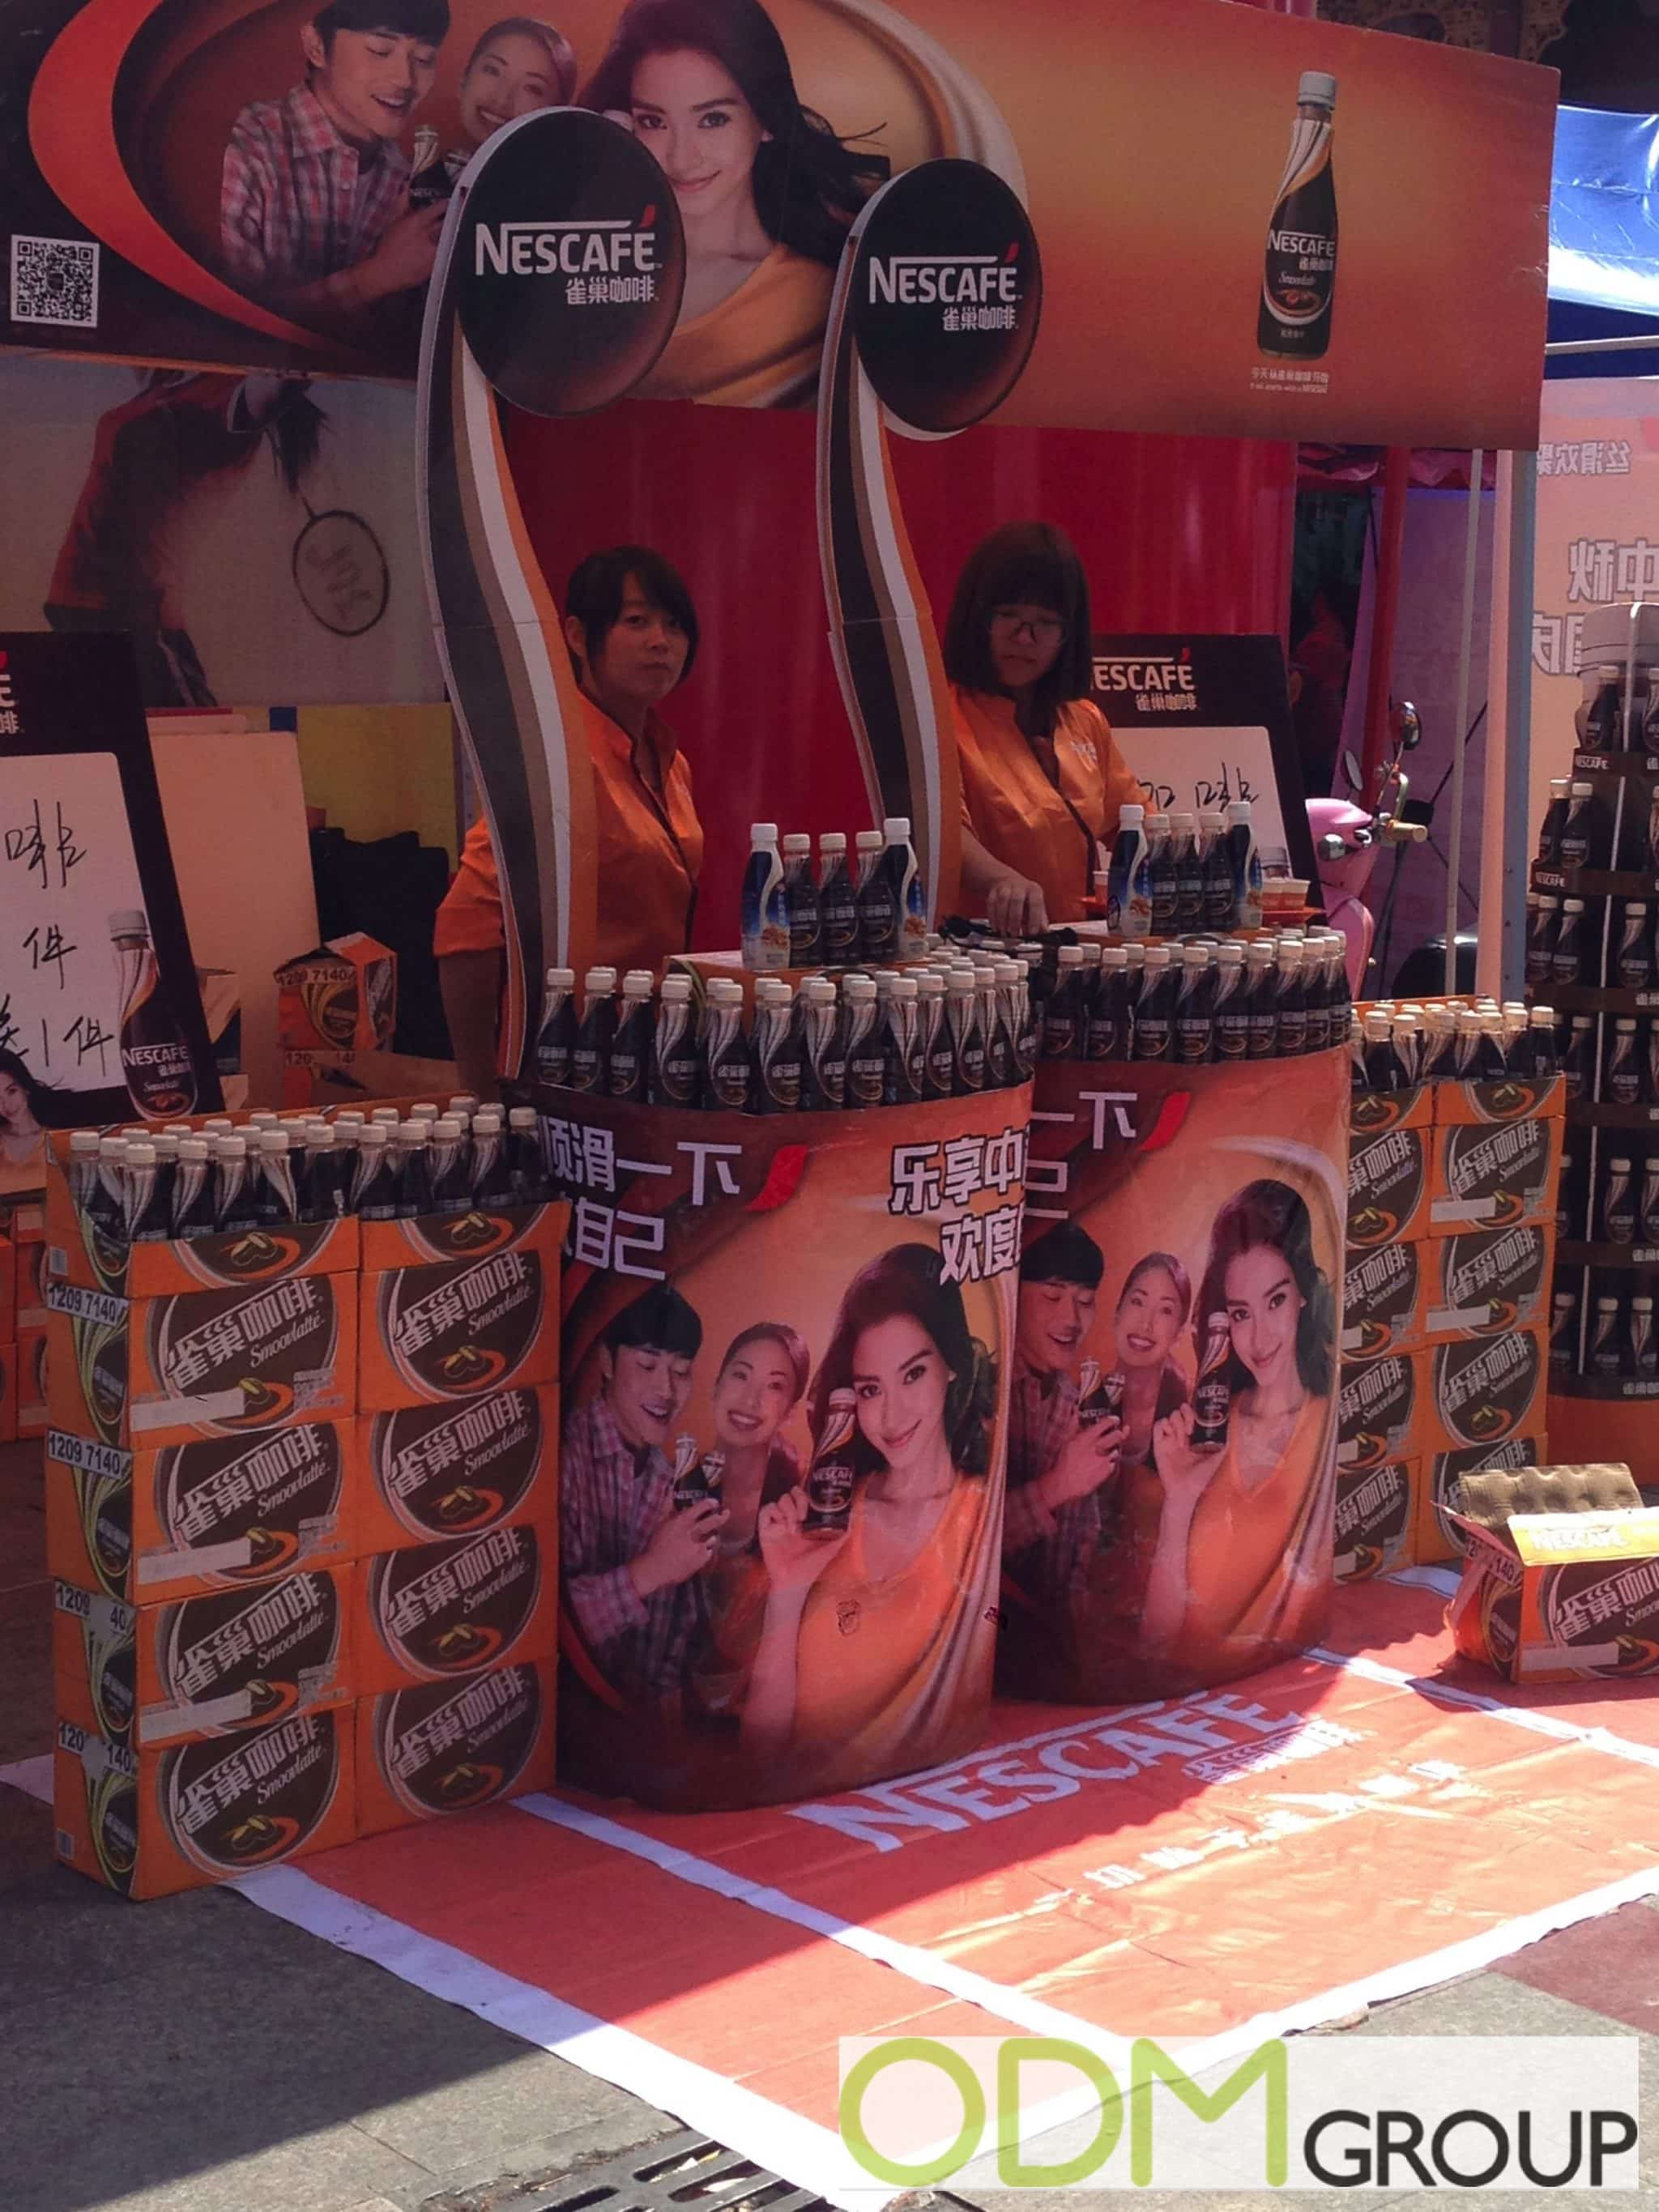 In-Store Display to Increase Brand Awareness by Nescafé